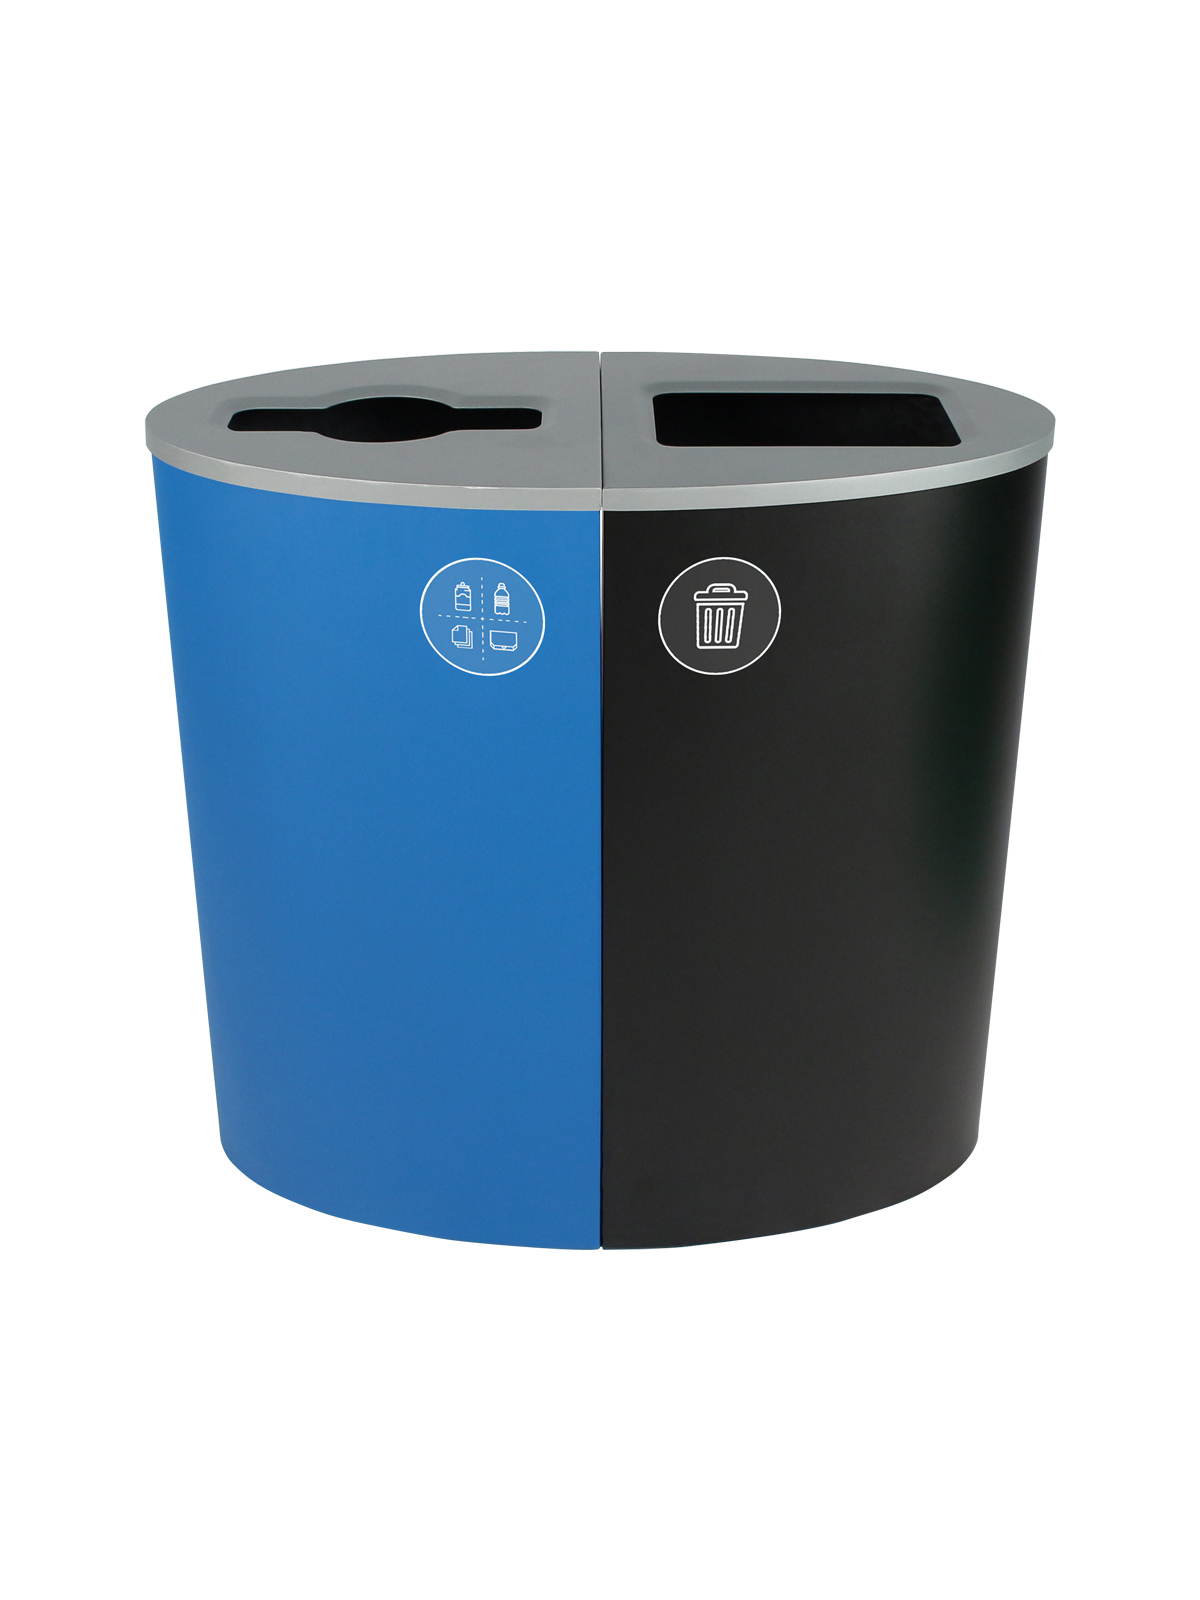 SPECTRUM - Double - Rhode Island Compliant - Mixed Recyclables-Waste - Mixed-Full - Blue-Black